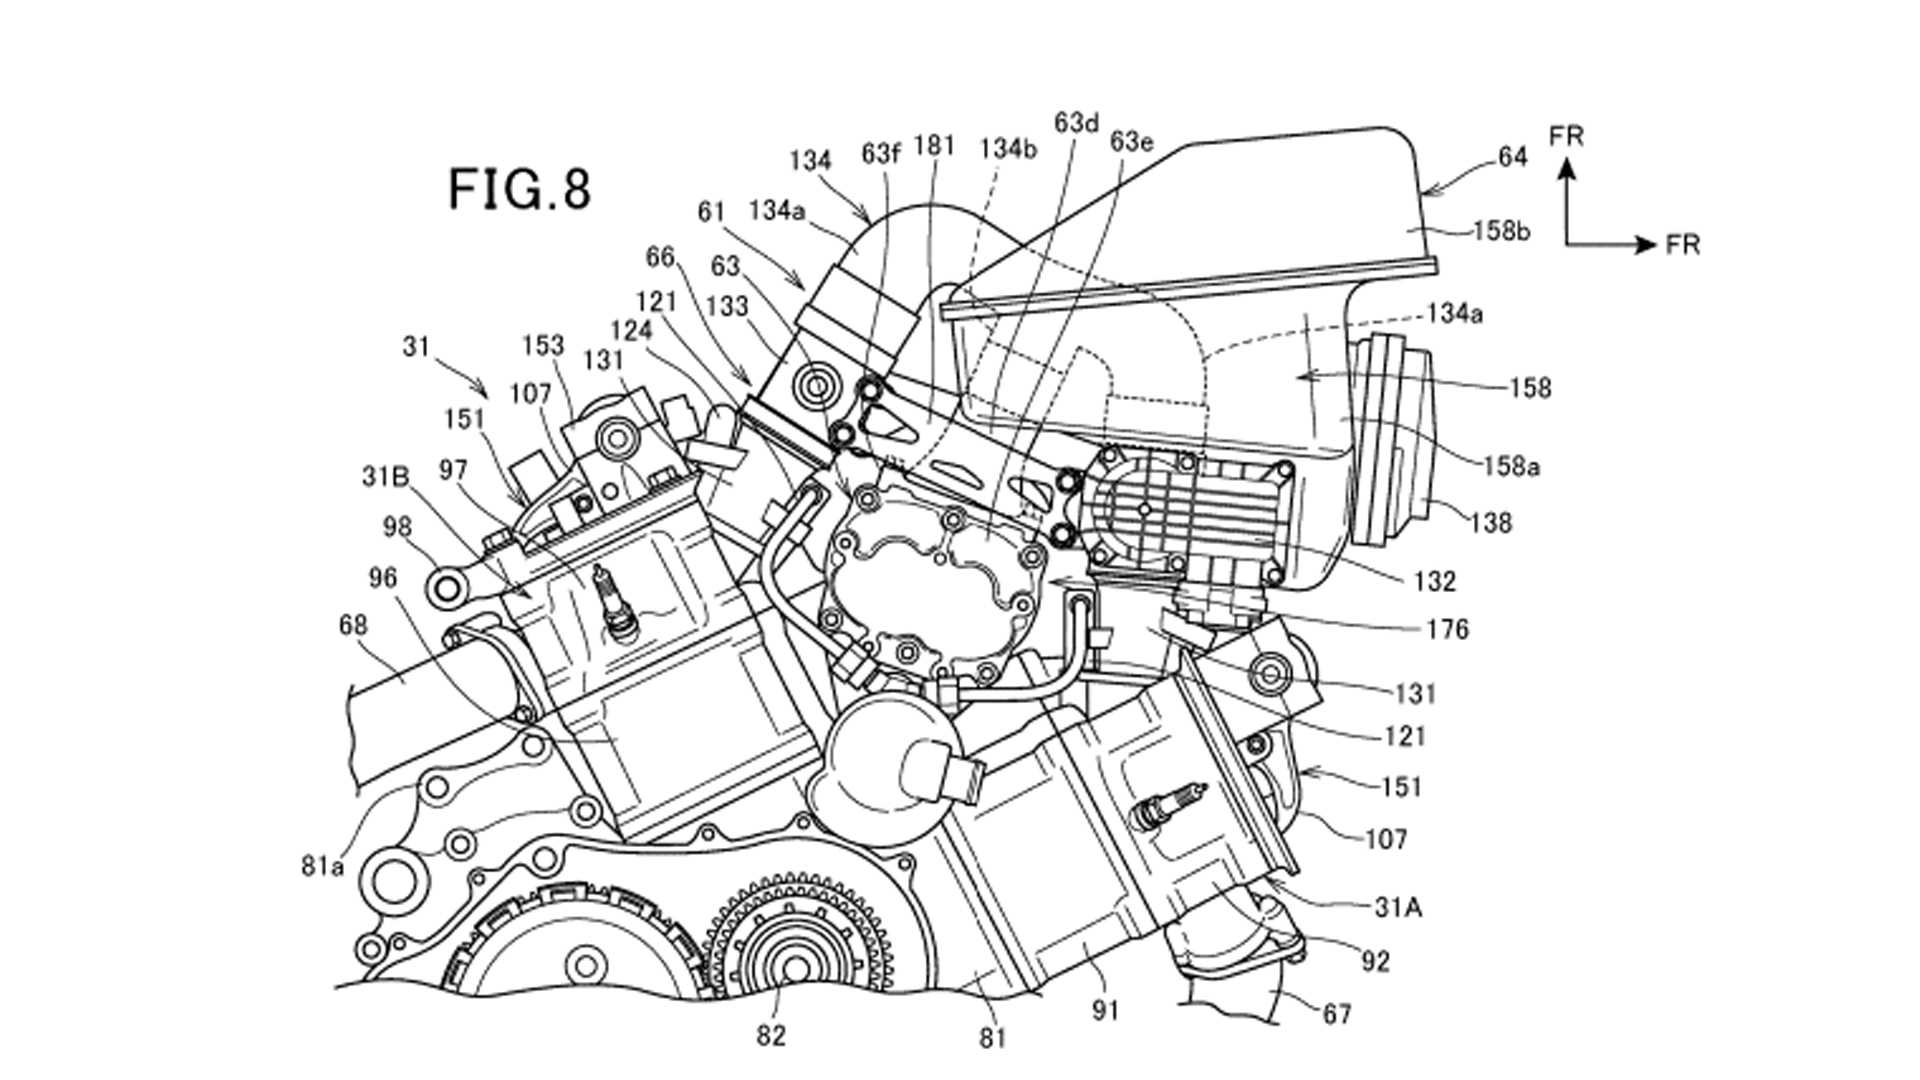 Is Honda Getting Ready To Release A Supercharged V-Twin Motorcycle? It Sure Looks That Way